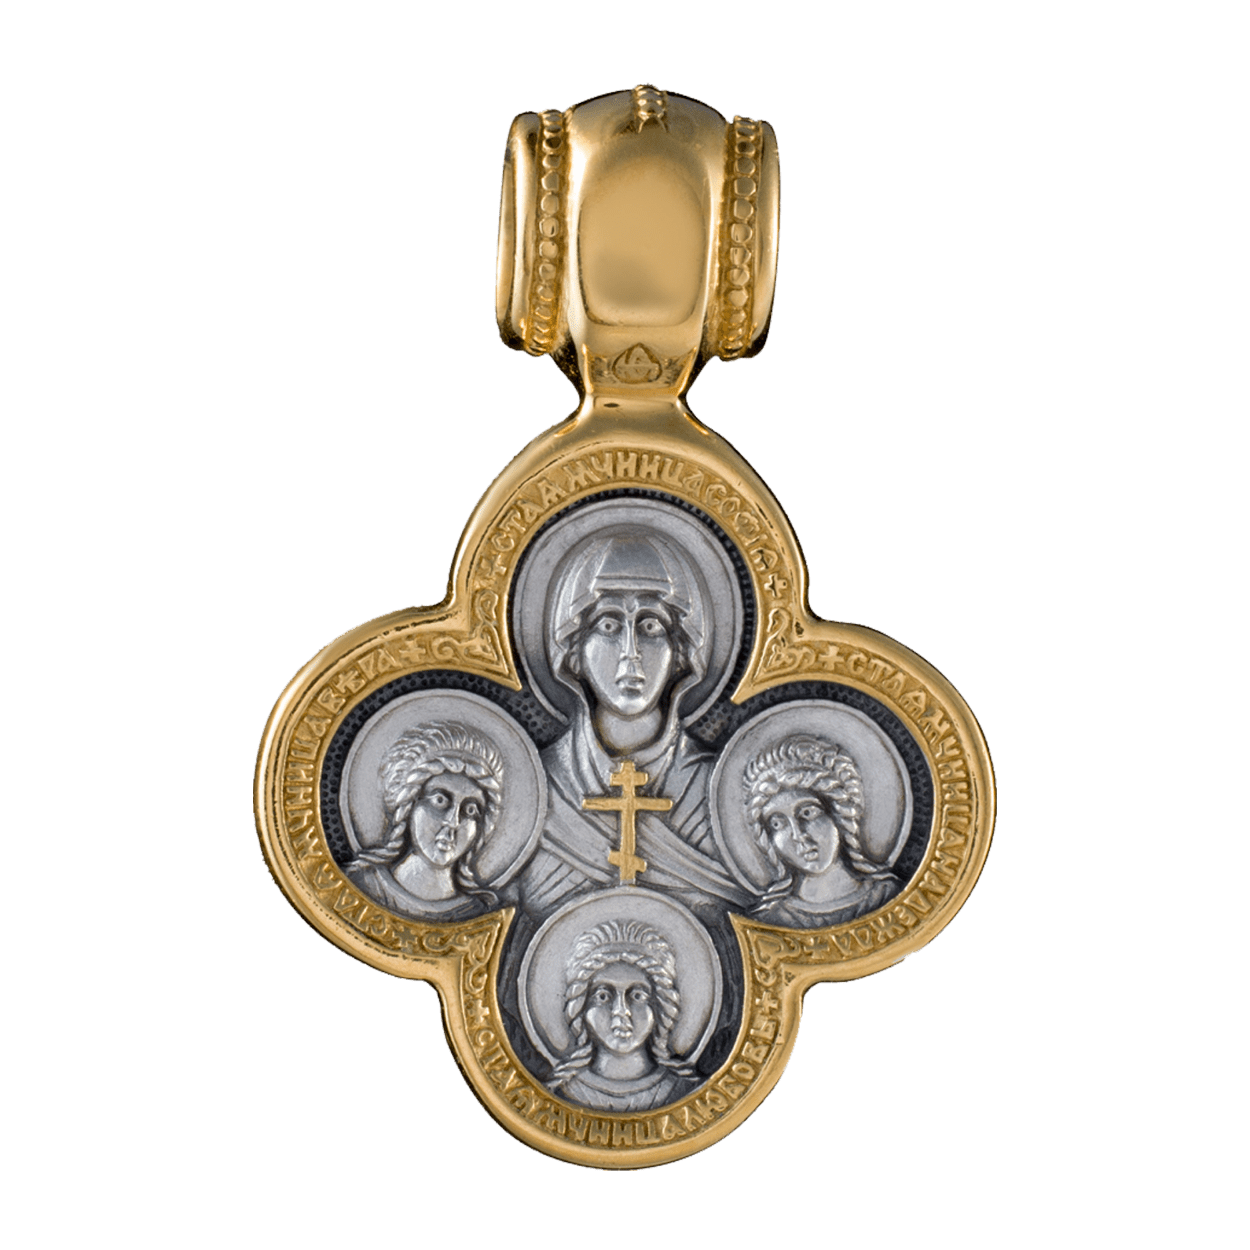 Russian Orthodox silver Cross pendant THE CALVARY CROSS THE HOLLY MARTYRS FAITH HOPE LOVE AND THEIR MOTHER SOPHIA, Master Jeweler Fedor